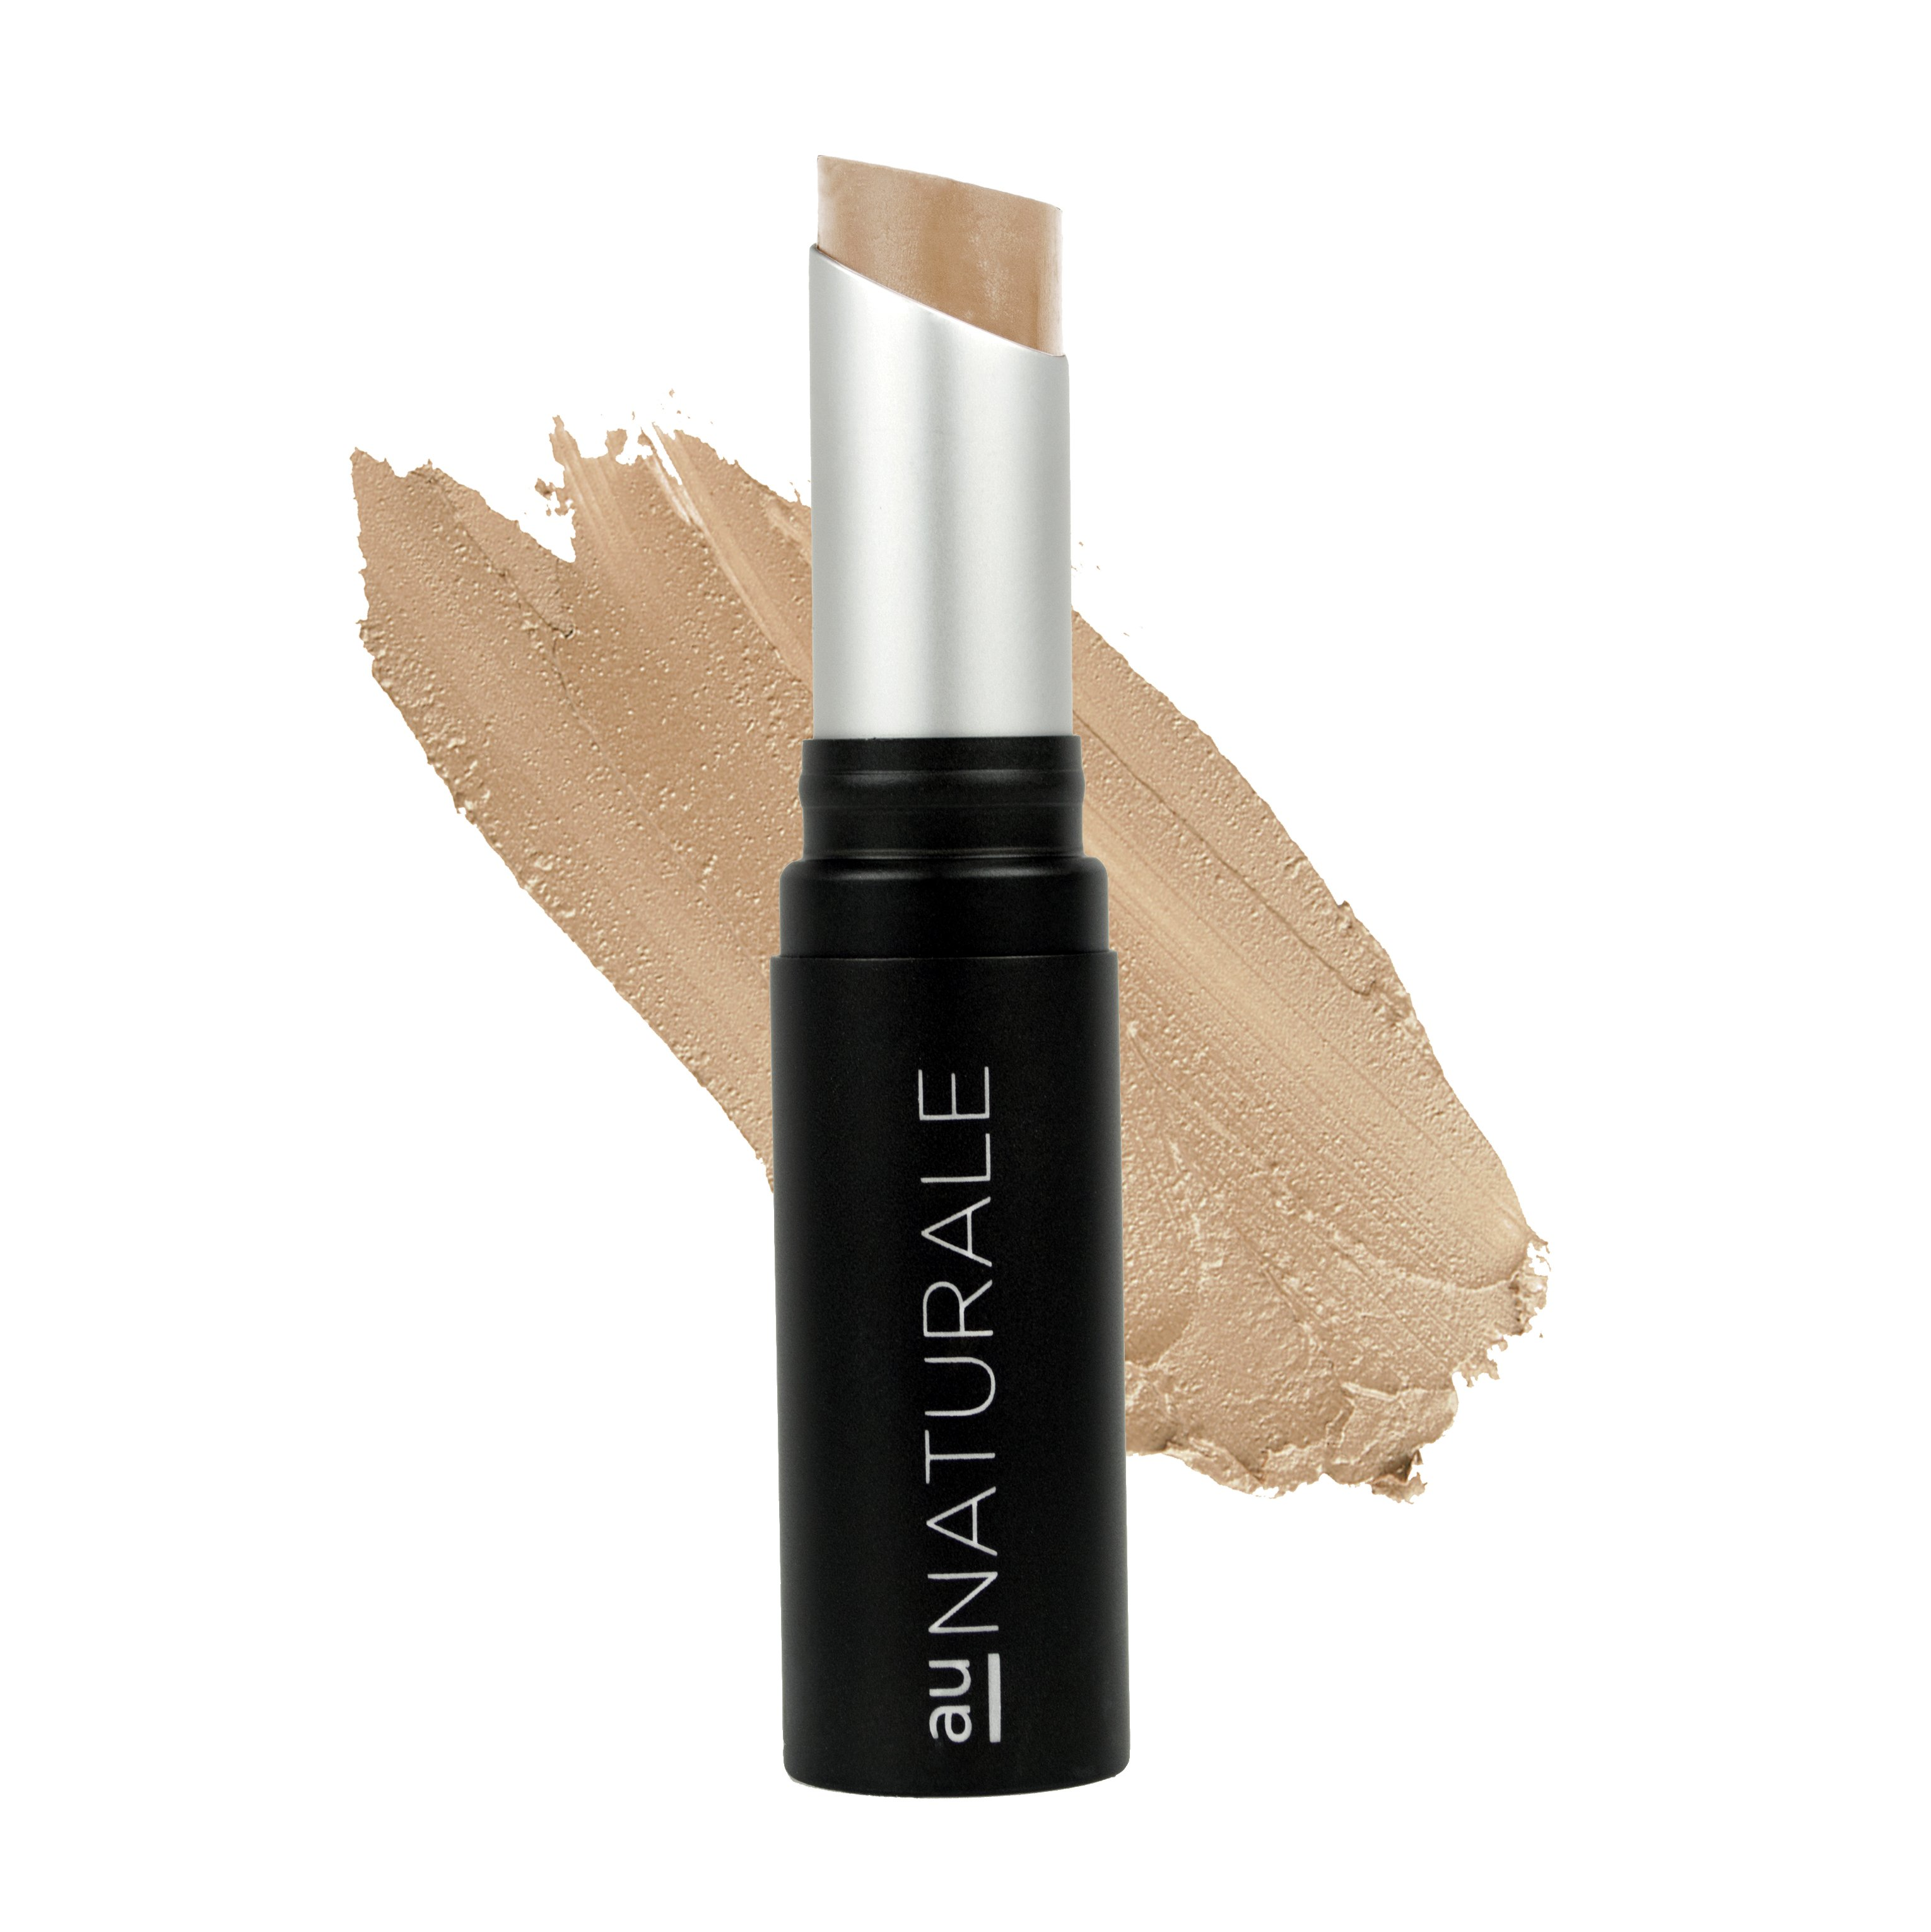 Completely Covered Creme Concealer - Tulum Image